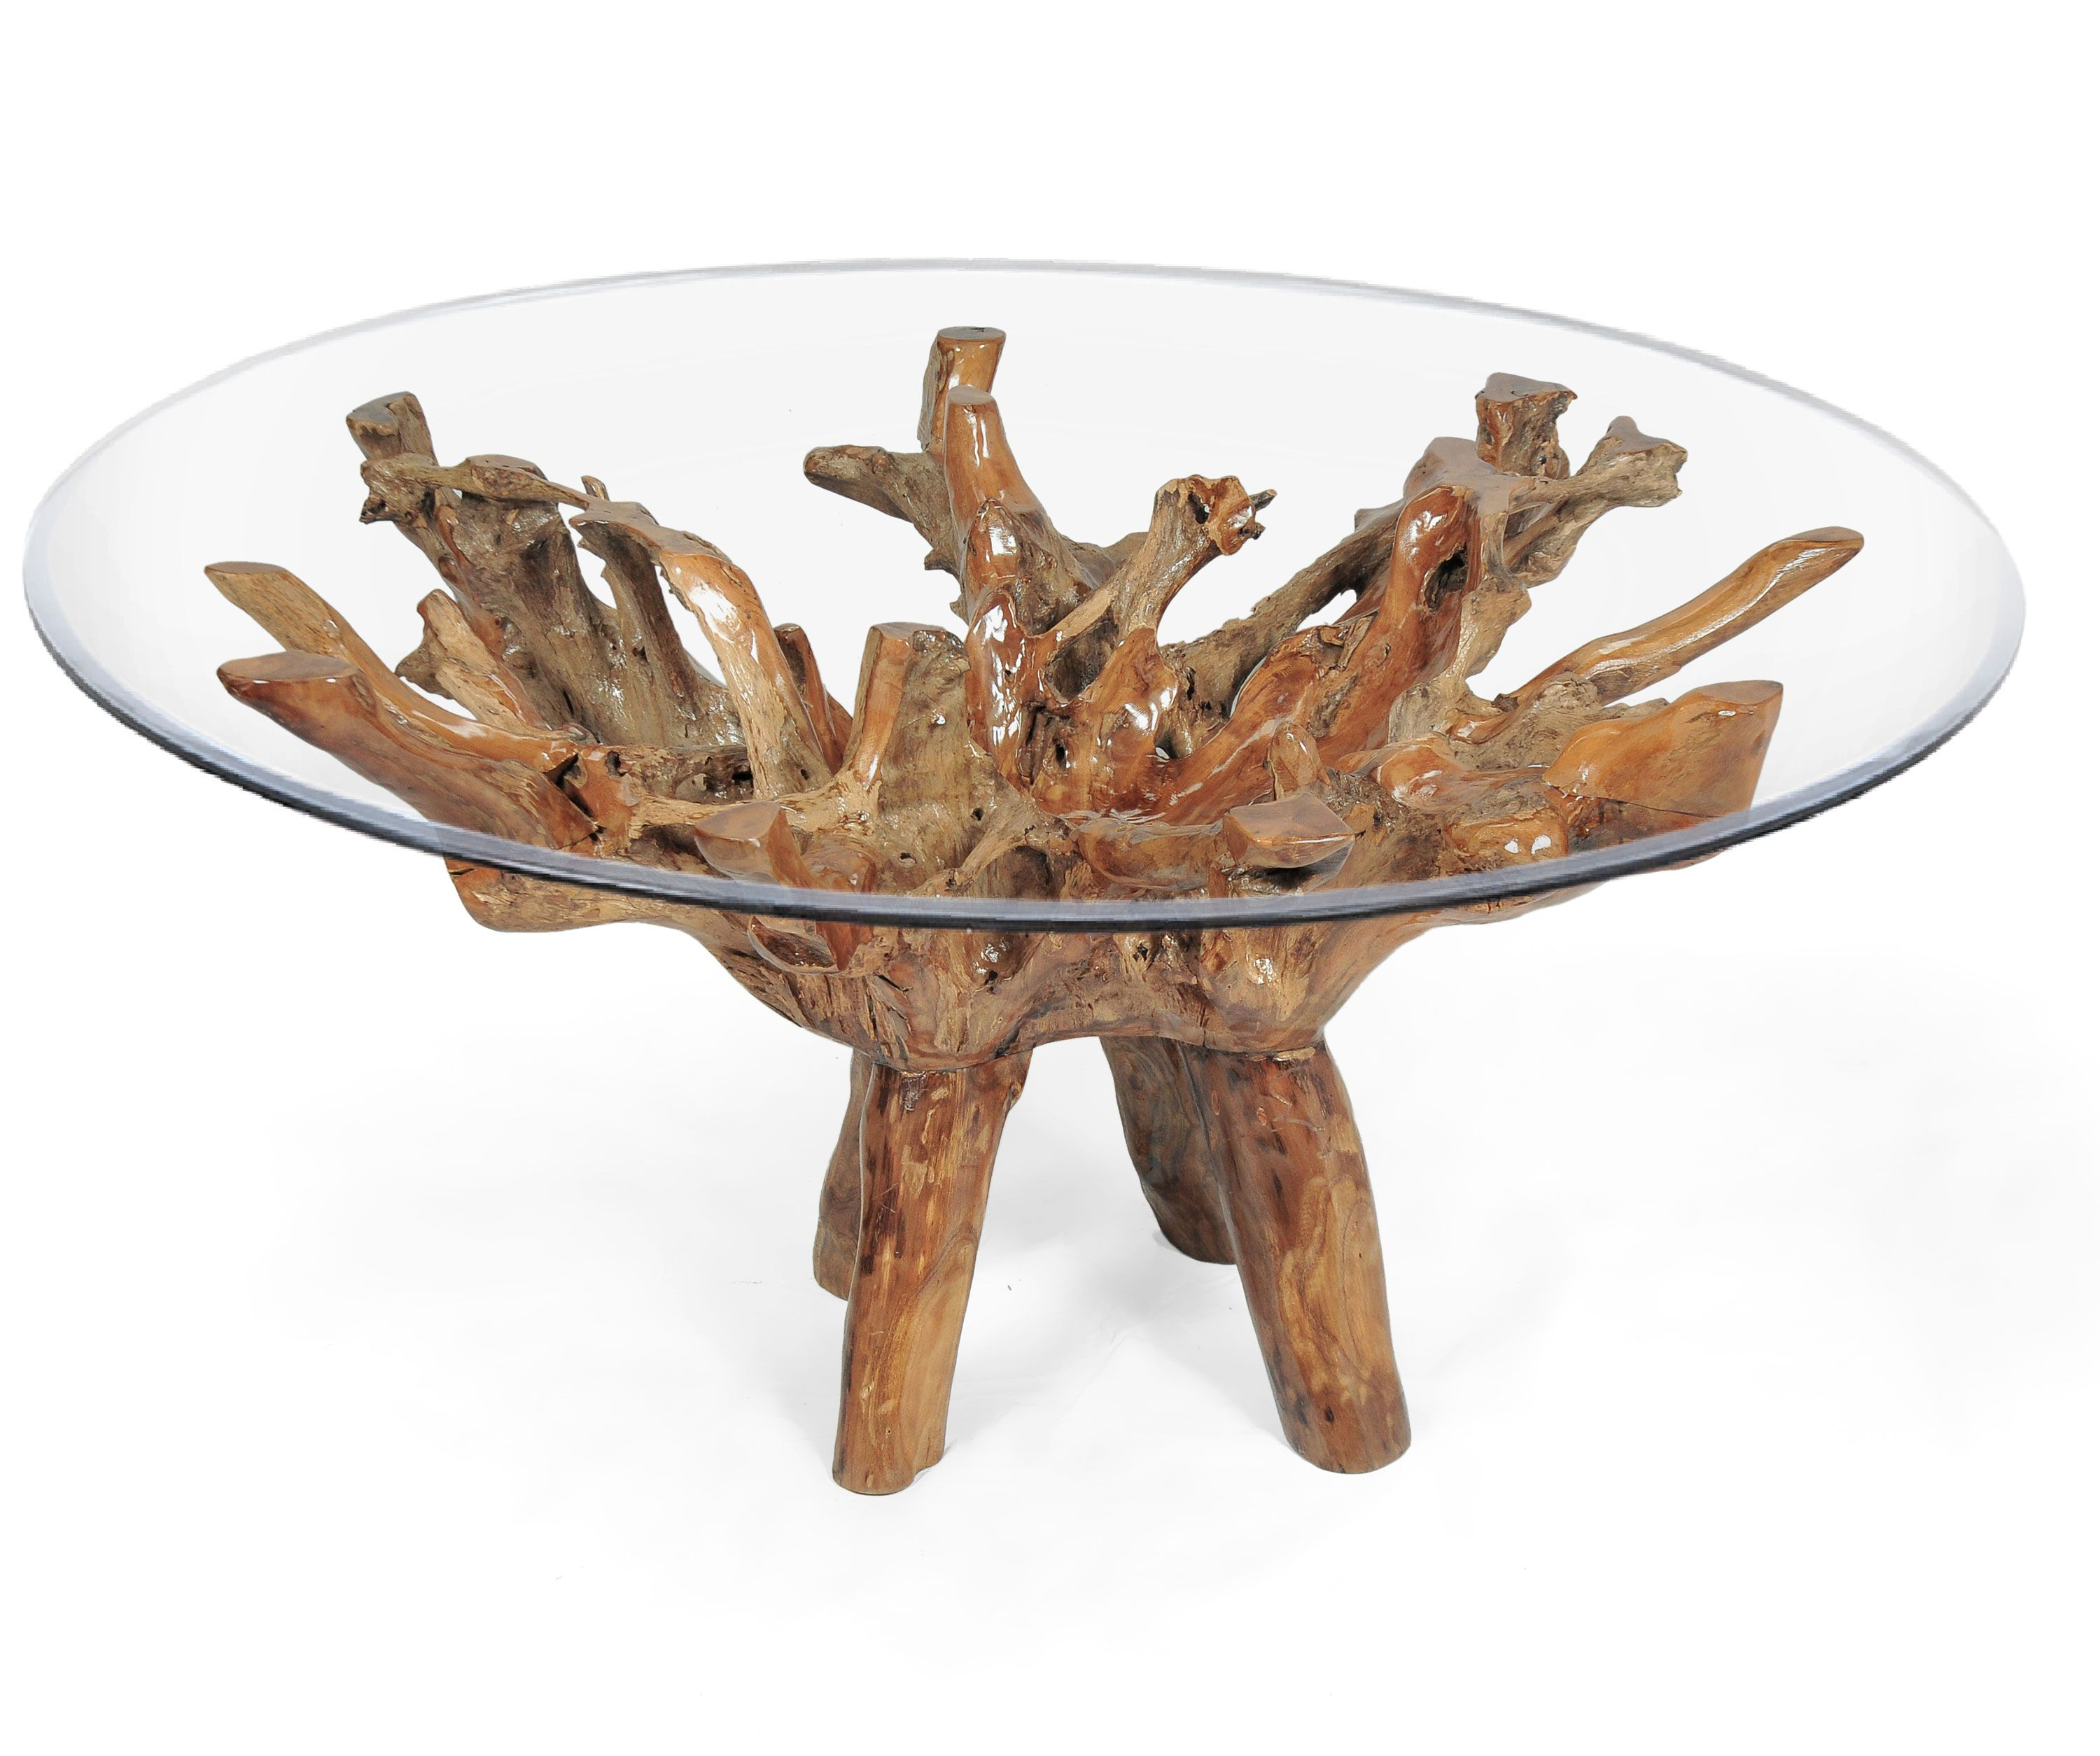 Teak Wood Root Dining Table Including A 63 Inch Round Glass Top Glass Top Coffee Table Teak Wood Dining Table